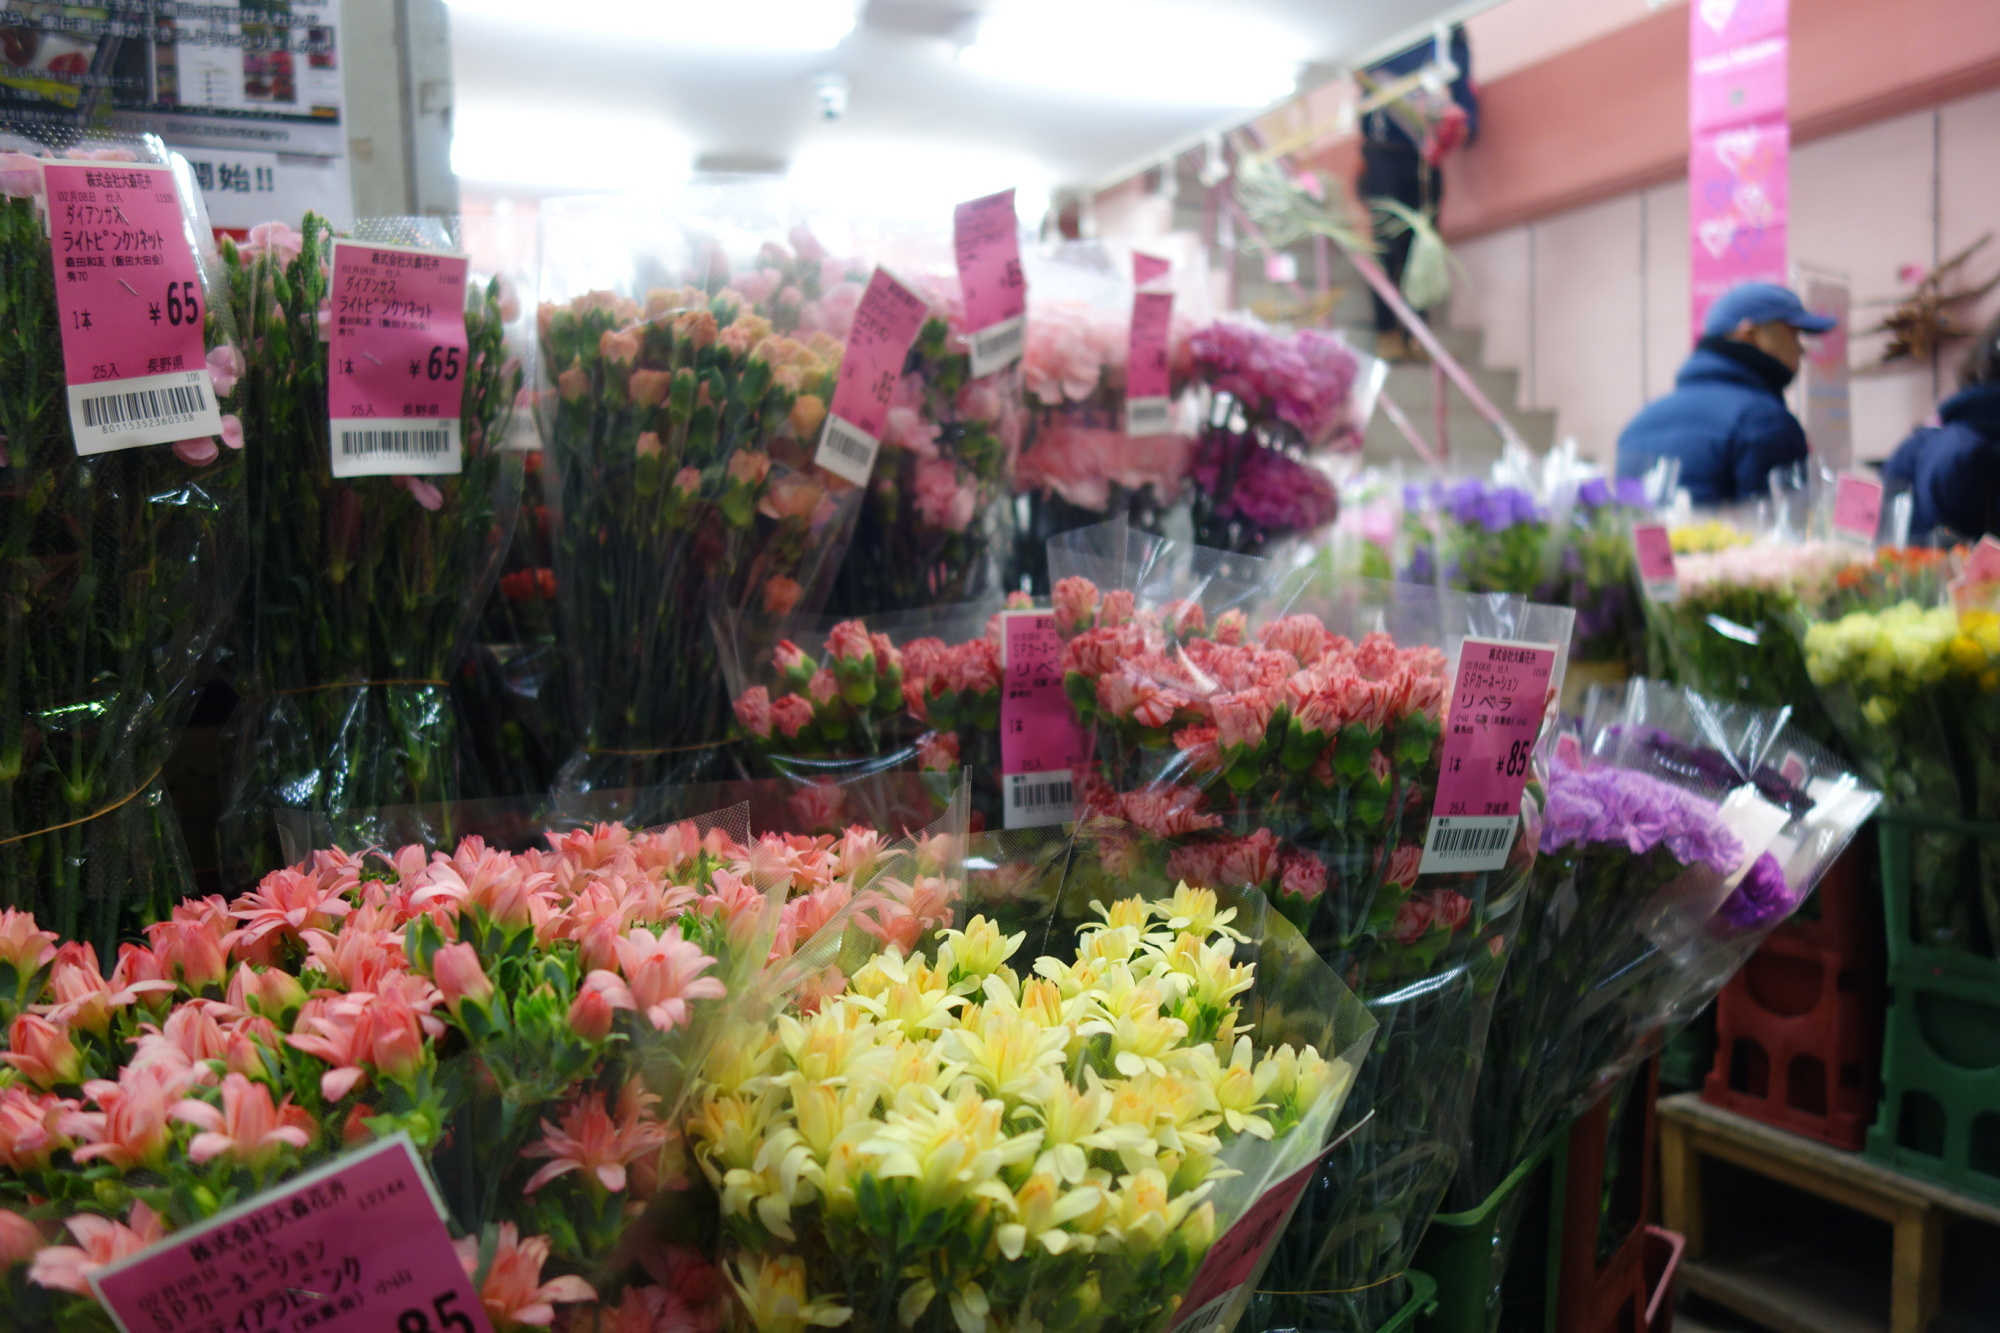 The price tags on the bundles of colorful blooms crowding the storefronts at Ota Shijo are markedly cheaper than what's seen in commercial stores.